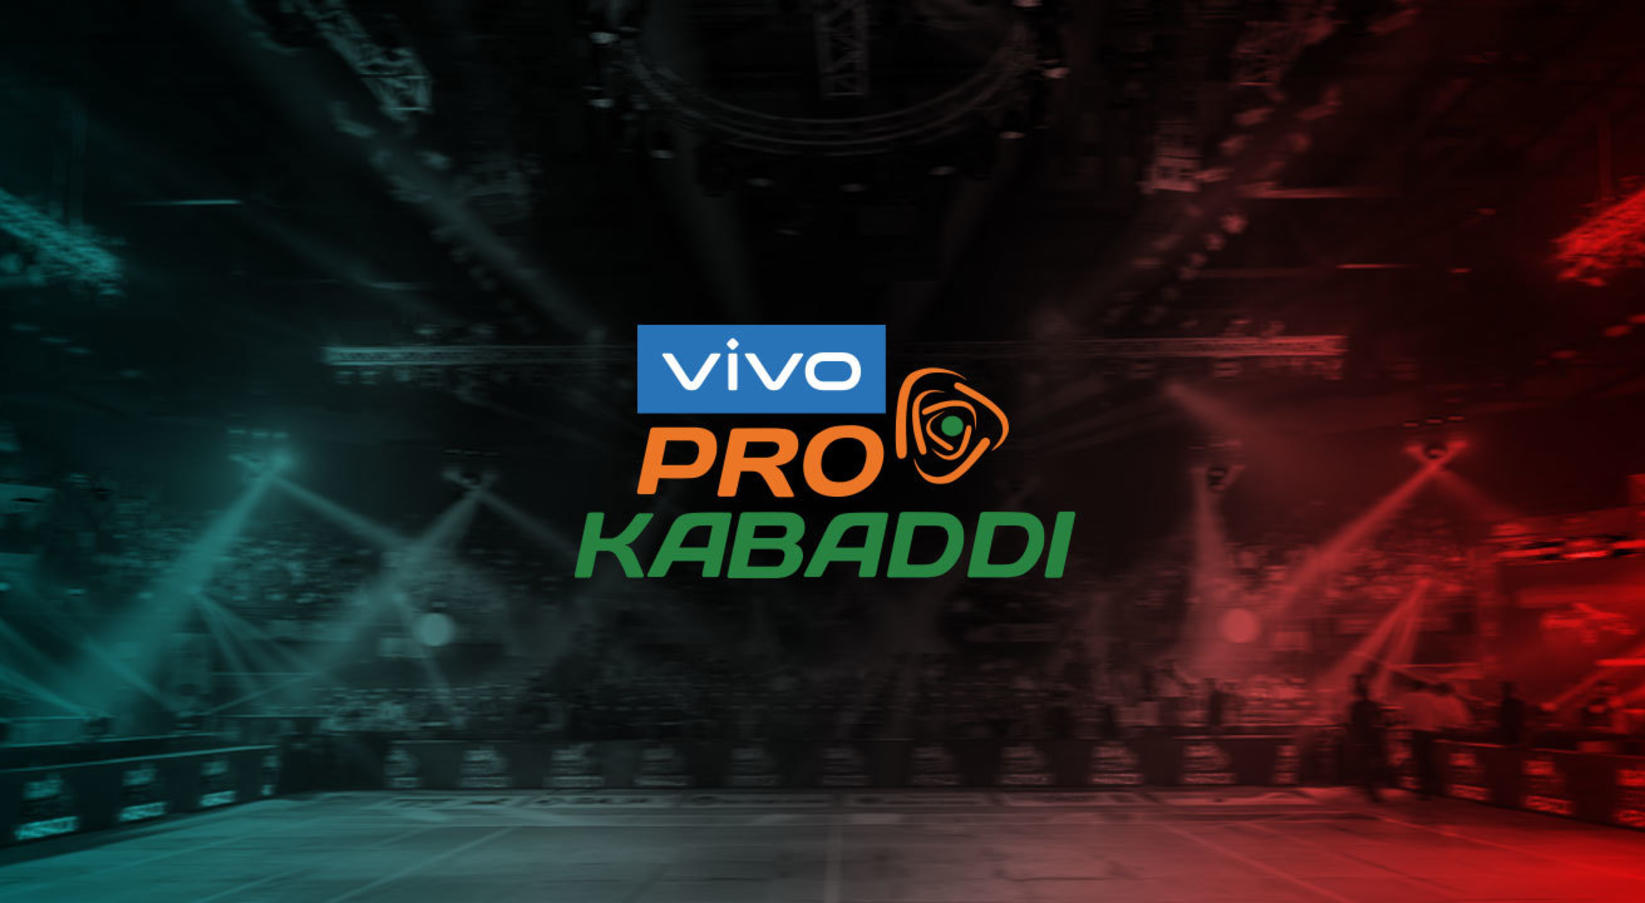 VIVO Pro Kabaddi 2019: Tickets, schedule, match results, squads and more!